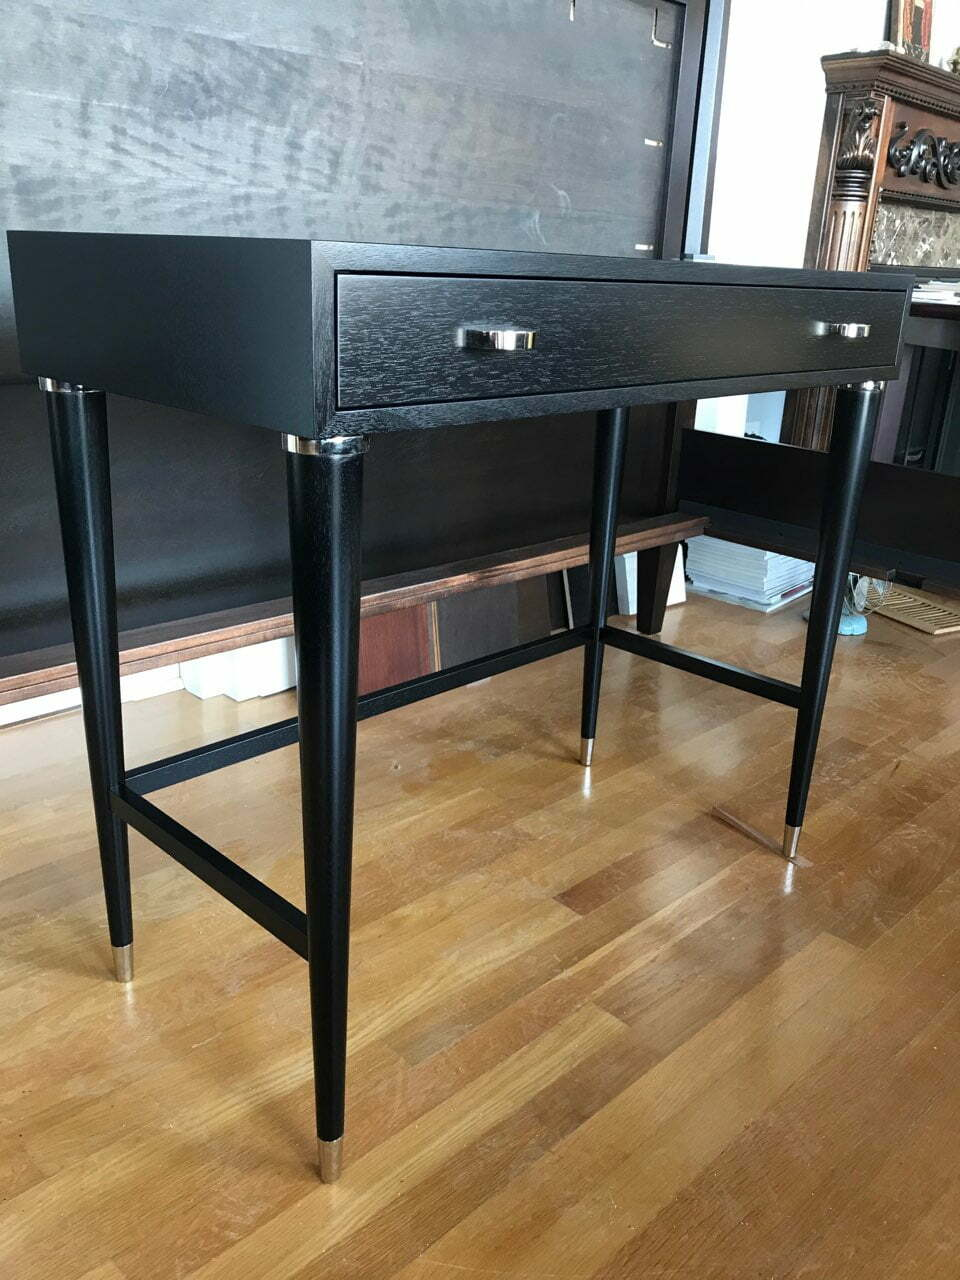 vas design, custom furniture builder in chicago